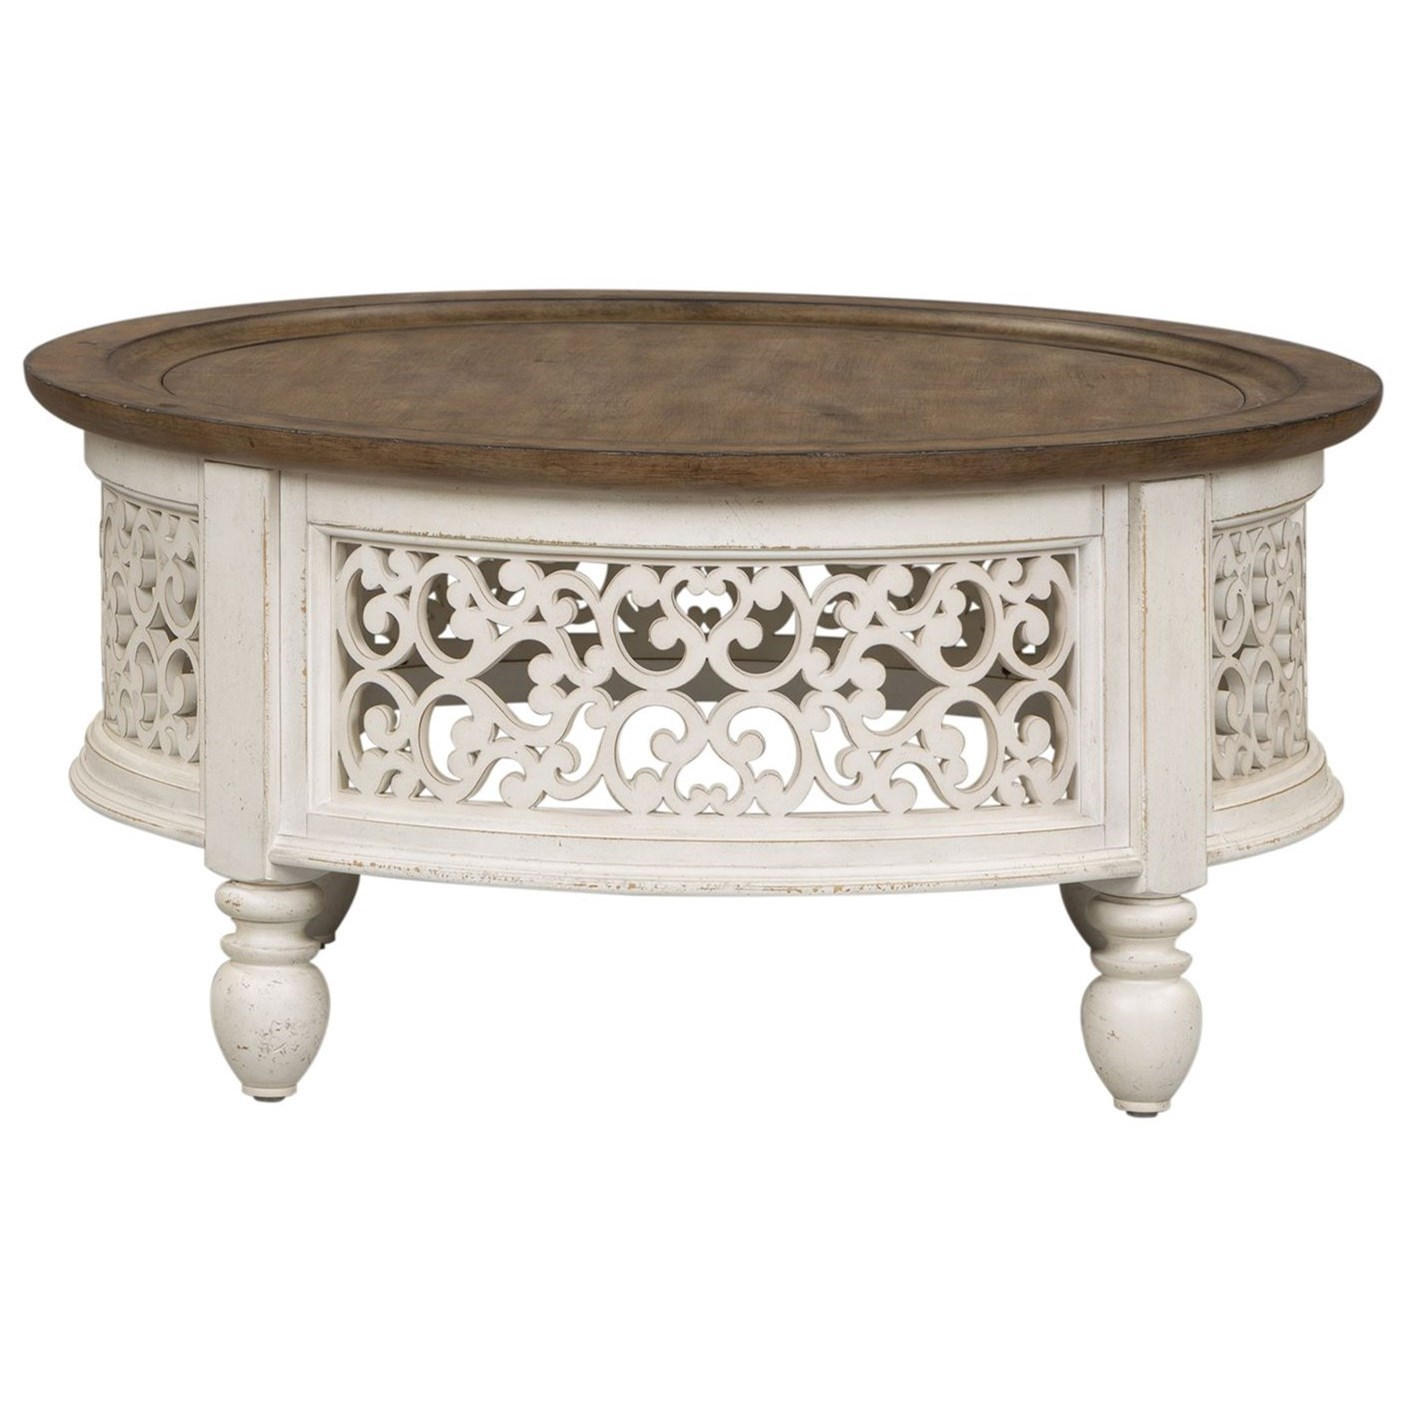 Parisian Marketplace Round Cocktail Table by Libby at Walker's Furniture